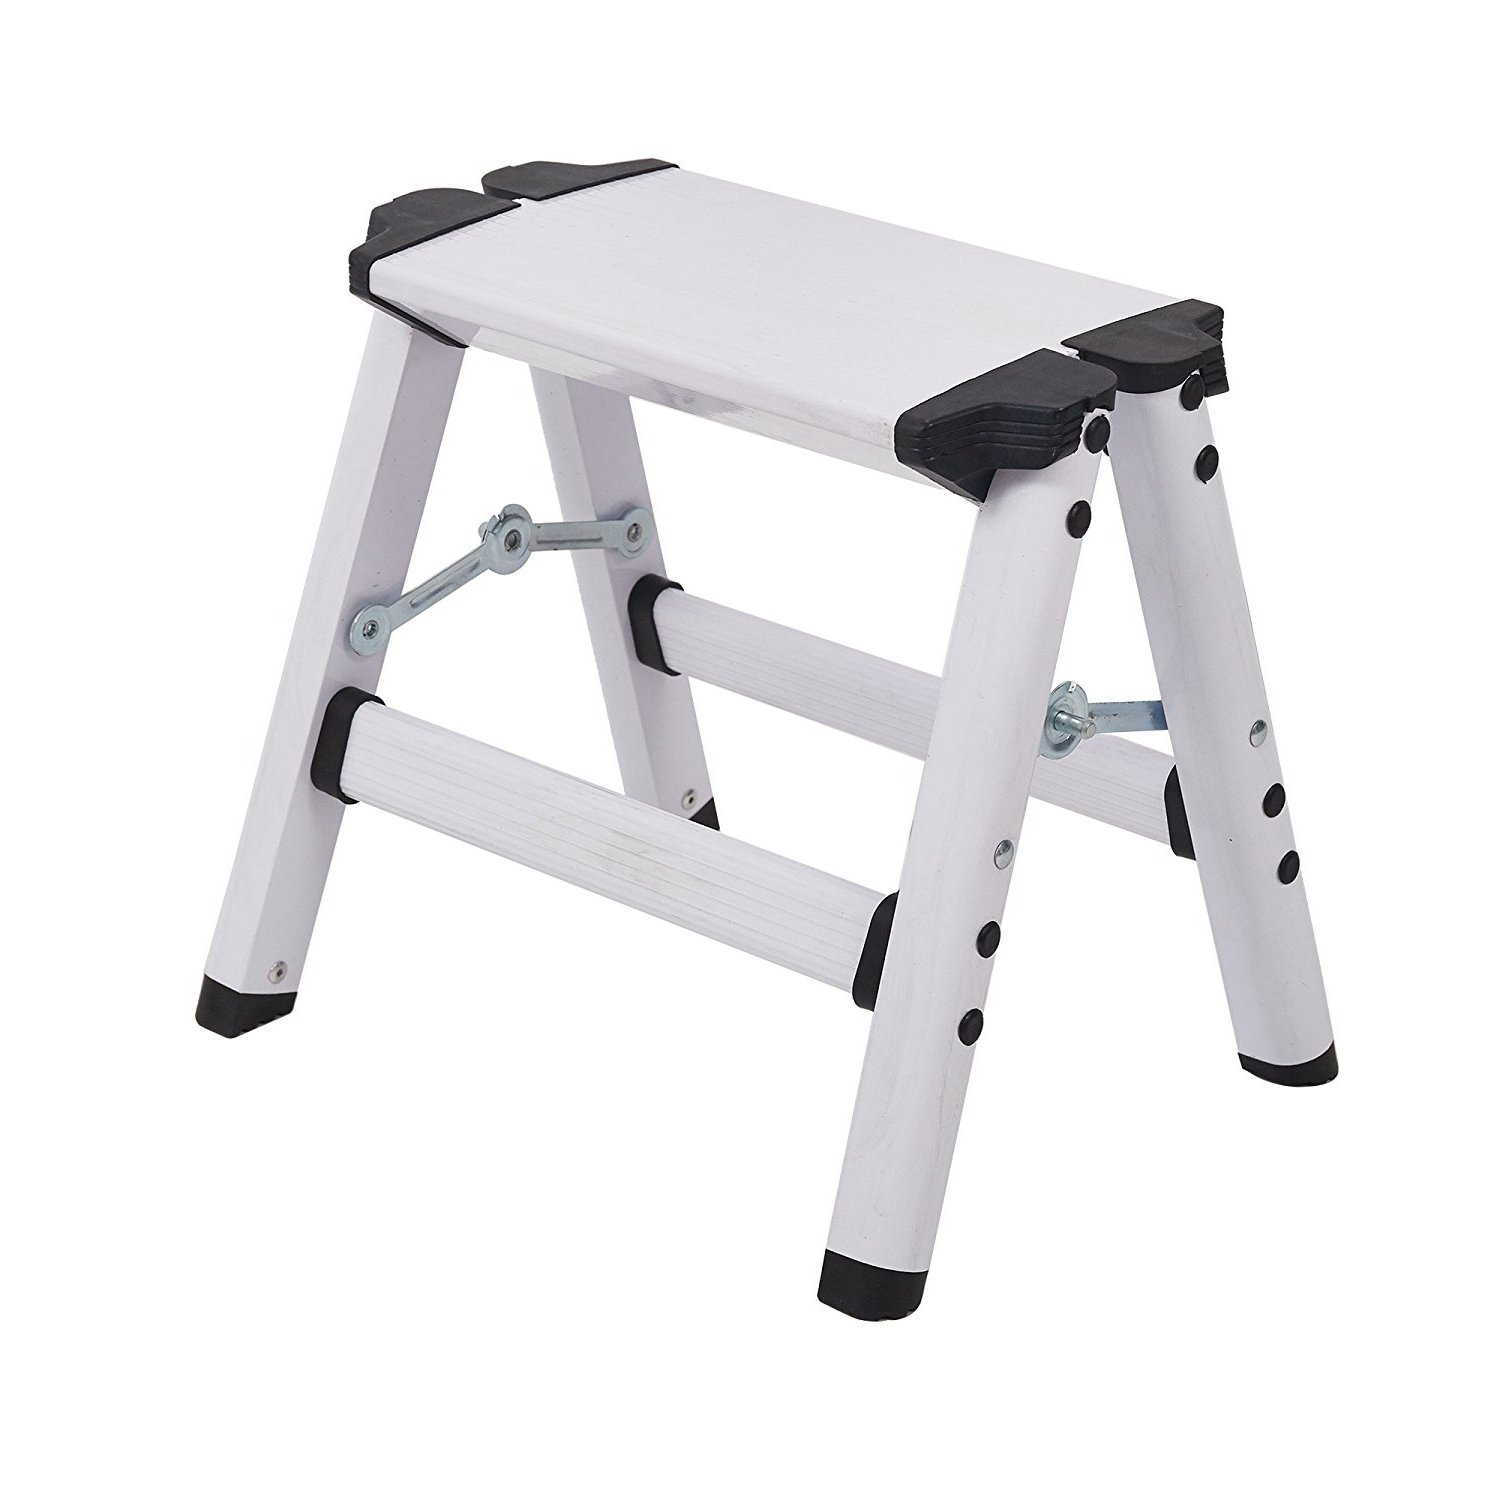 Livebest Folding 2 Step Stool Light Weight Aluminum Step Ladder with a Secure Standing Platform for Office Home 330 lbs Capacity (12'' H)